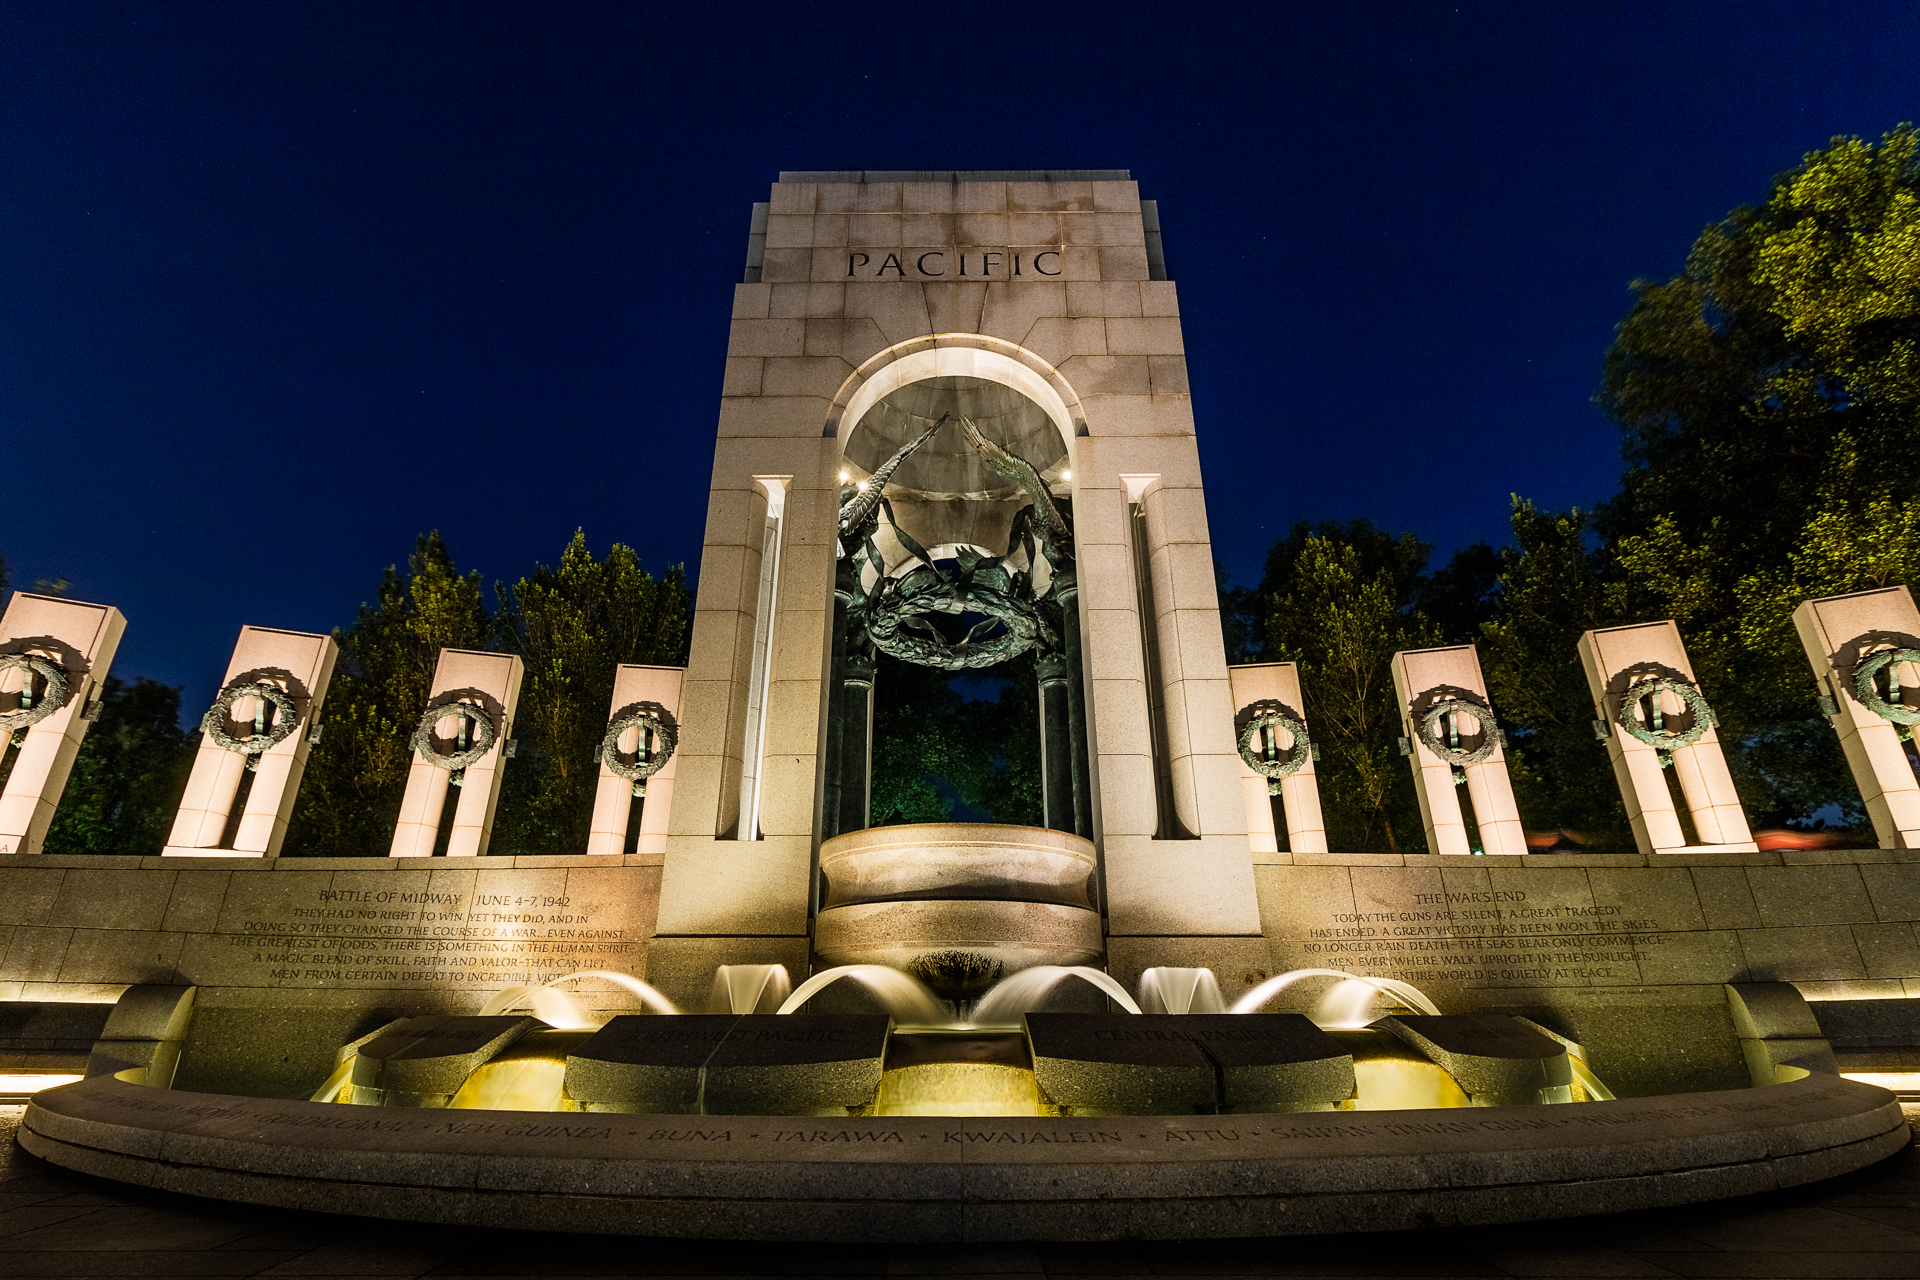 Pacific Theater – Long exposure of the WWII memorial at night{&amp;nbsp;}(Image: Zack Lewkowicz)<p></p>